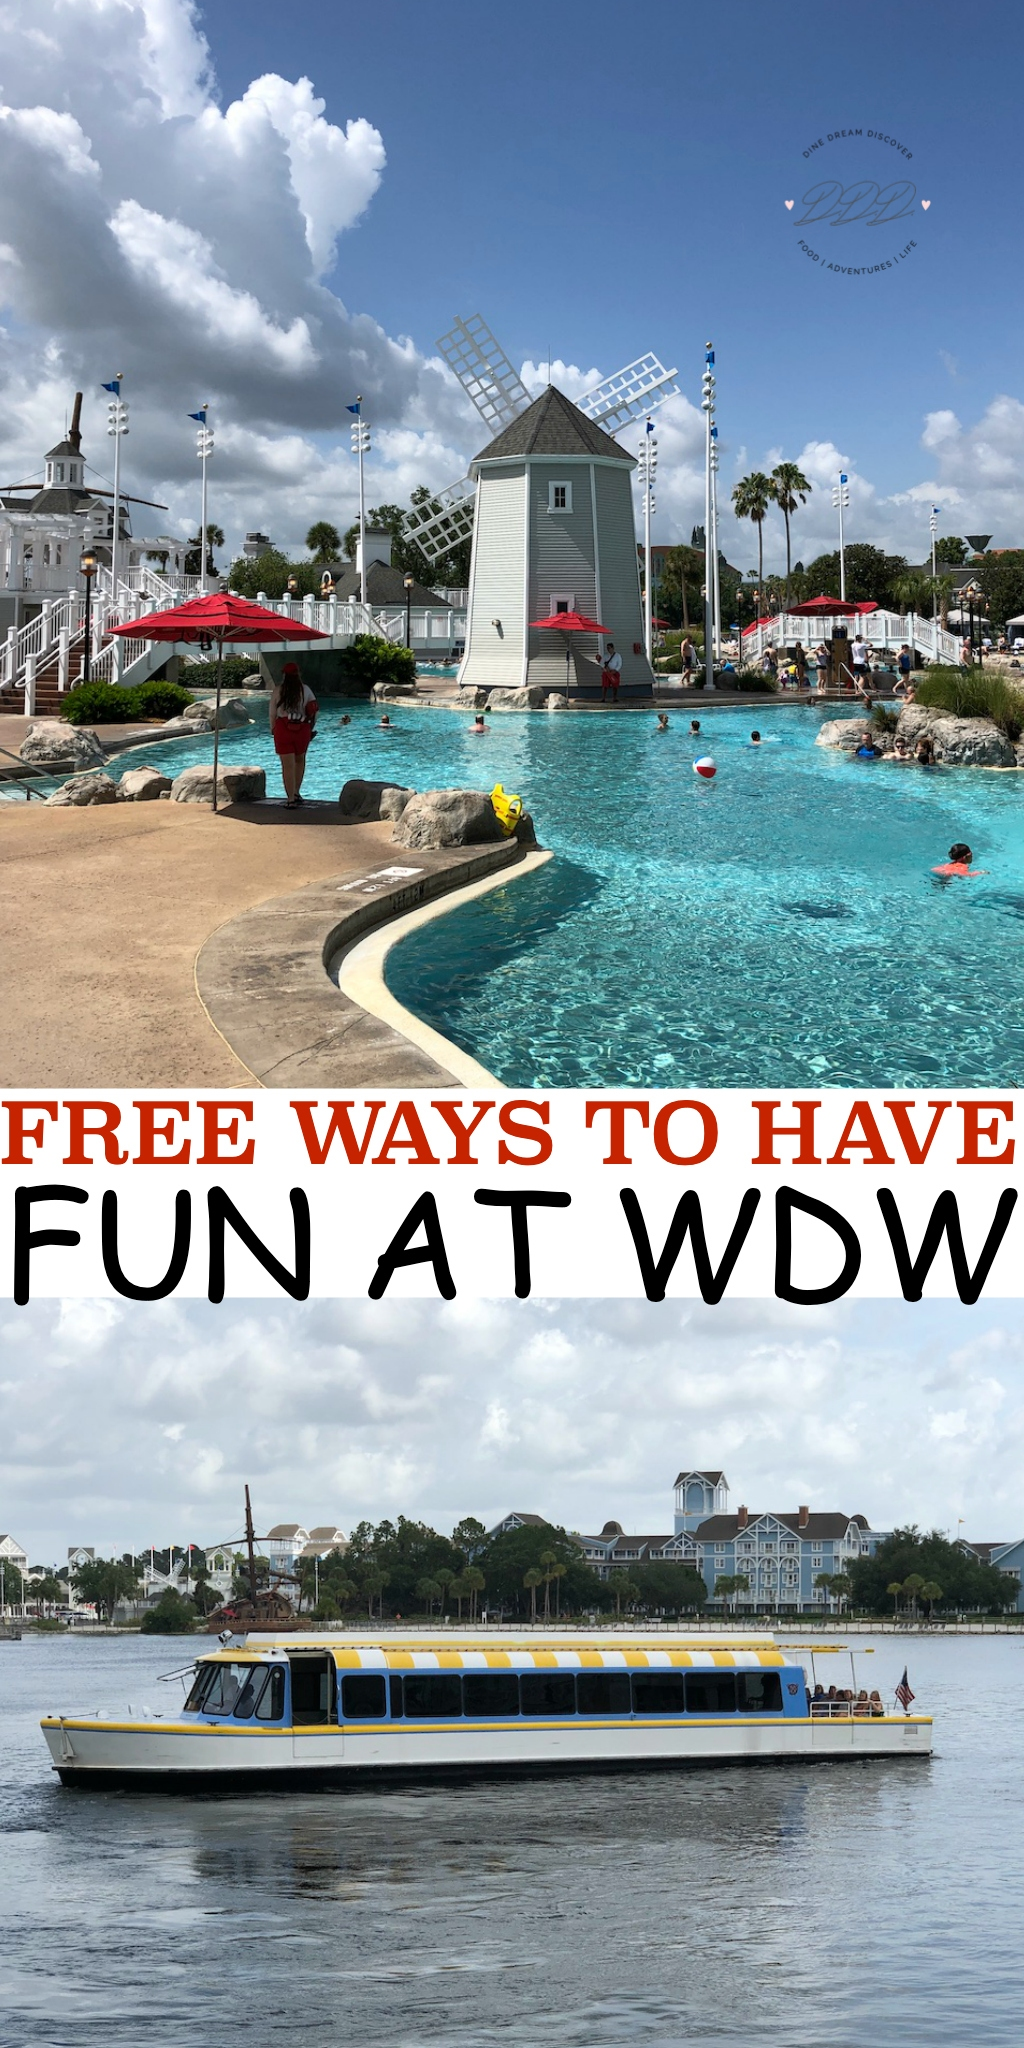 We have ideas on how to fill your time while keeping your pockets full too! Read on for FREE ways to have fun at WDW.